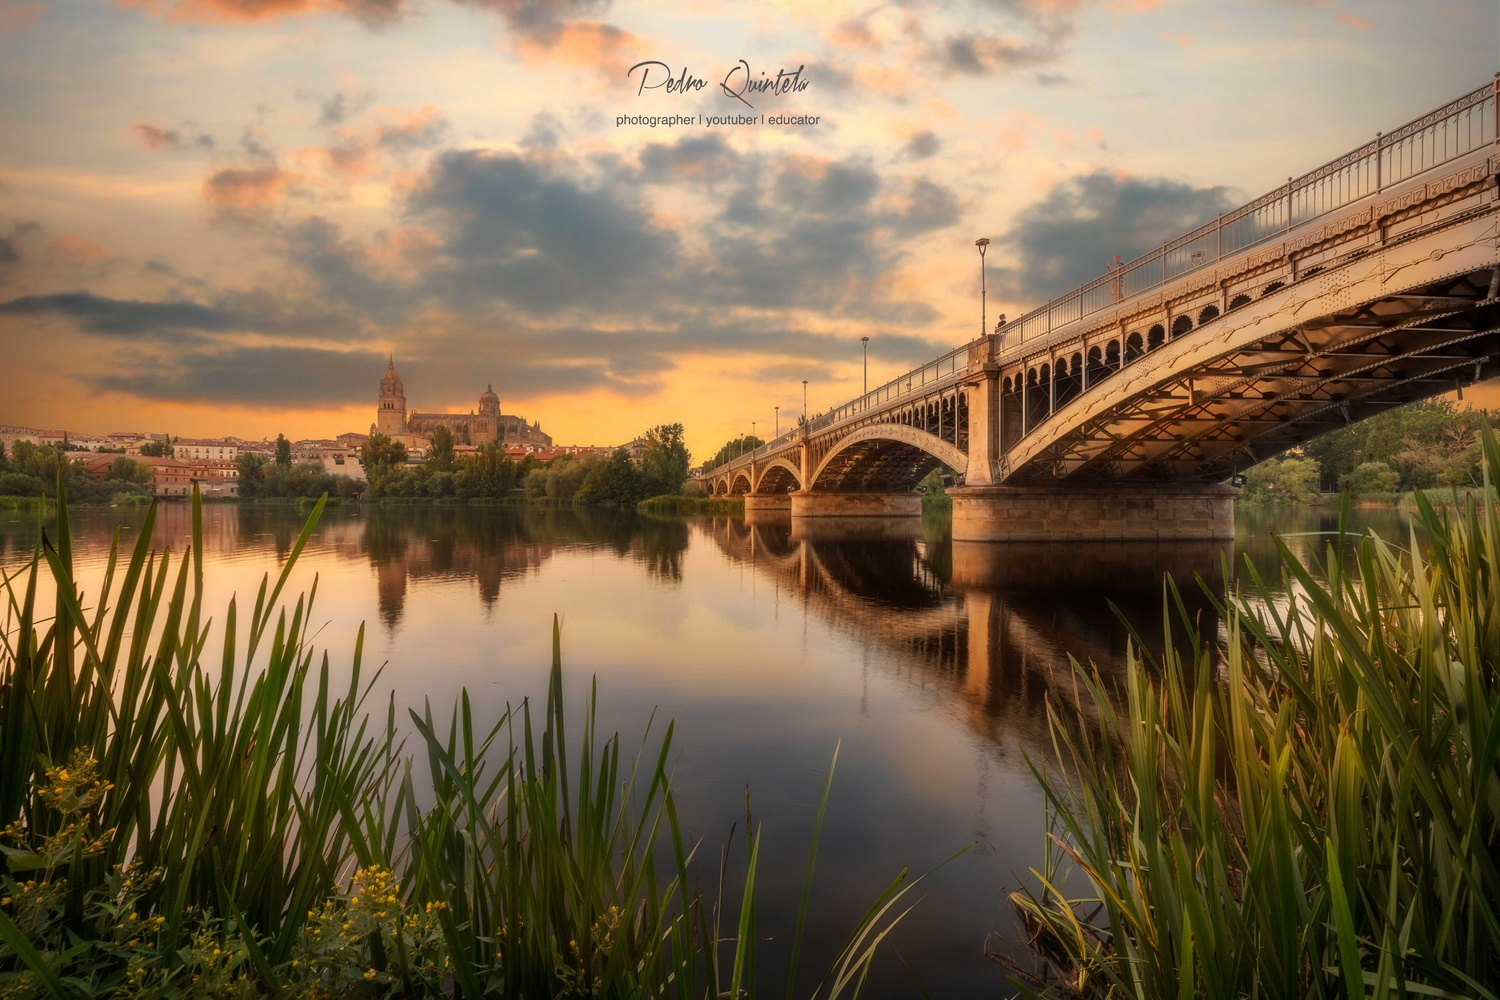 In the Distance by Pedro Quintela